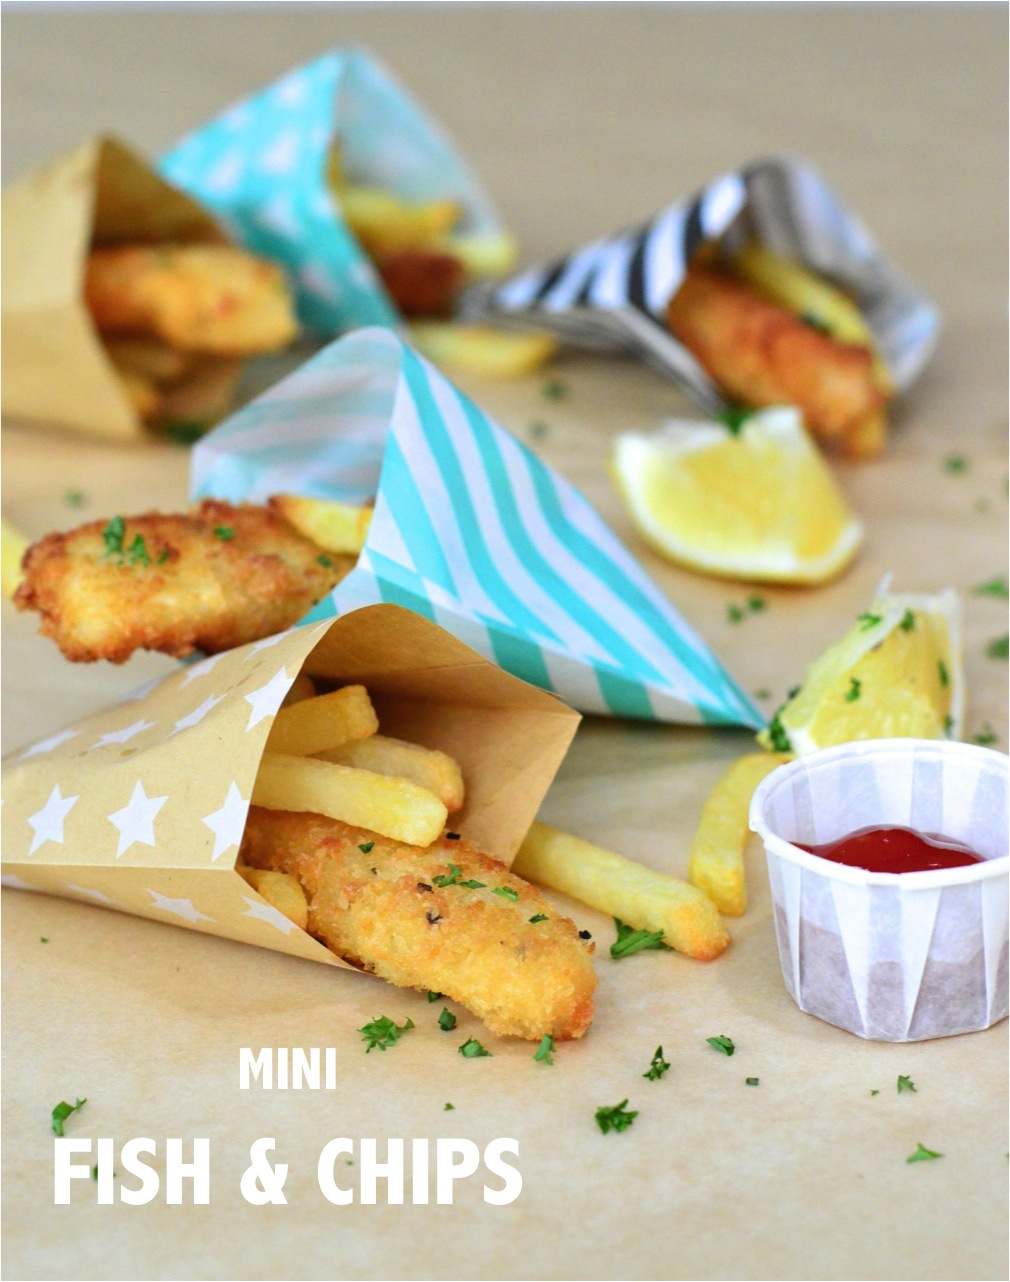 Easy party food recipes mini fish chips for All you can eat fish and chips near me